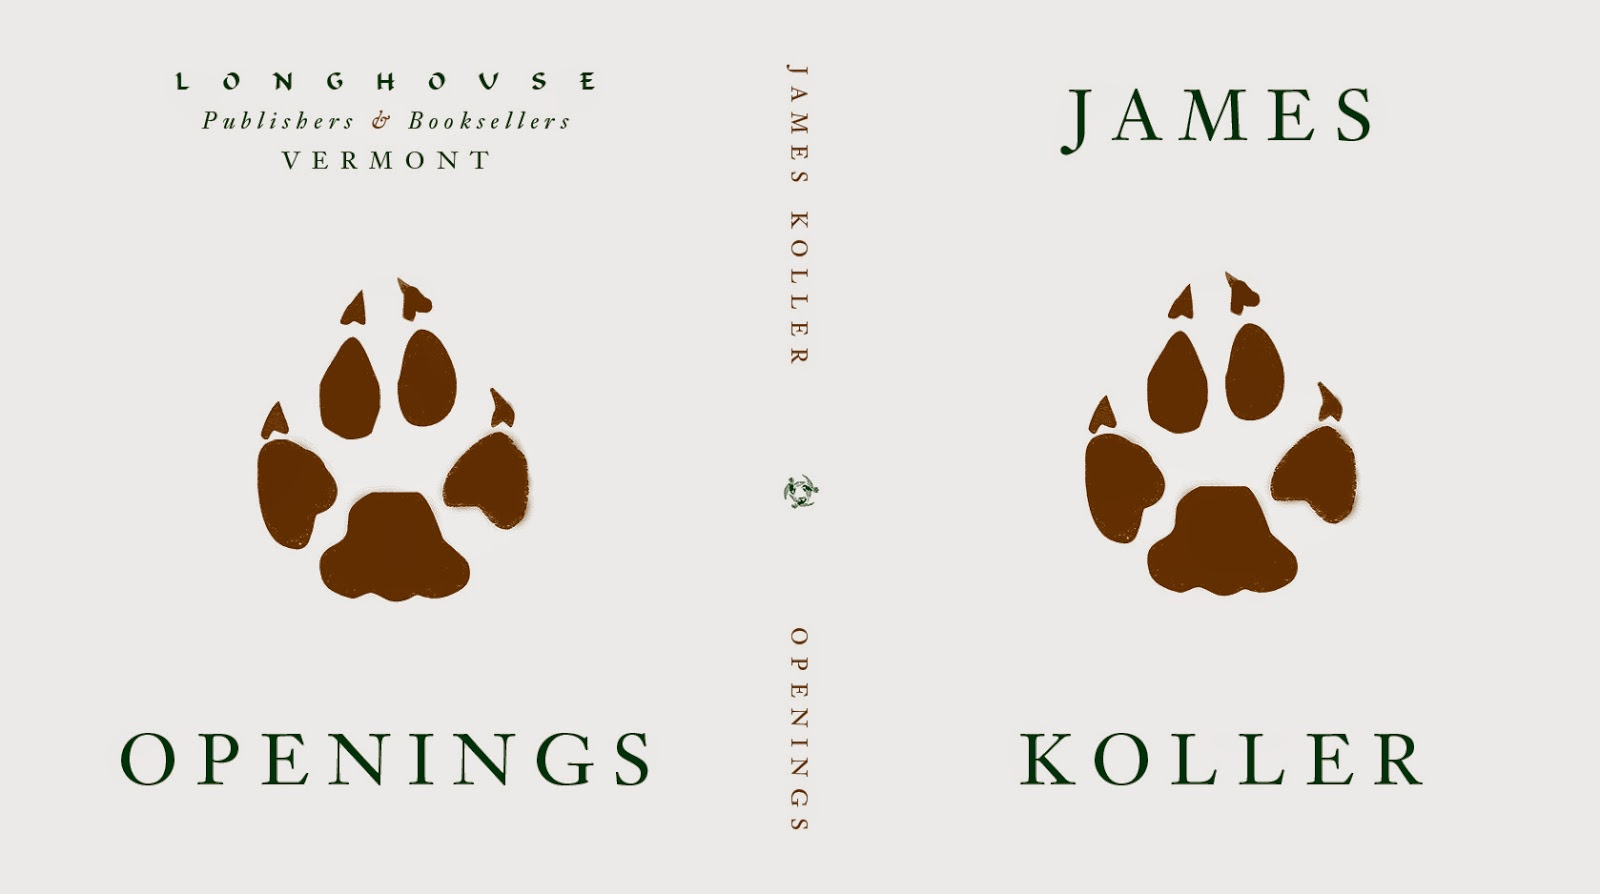 OPENINGS by JAMES KOLLER